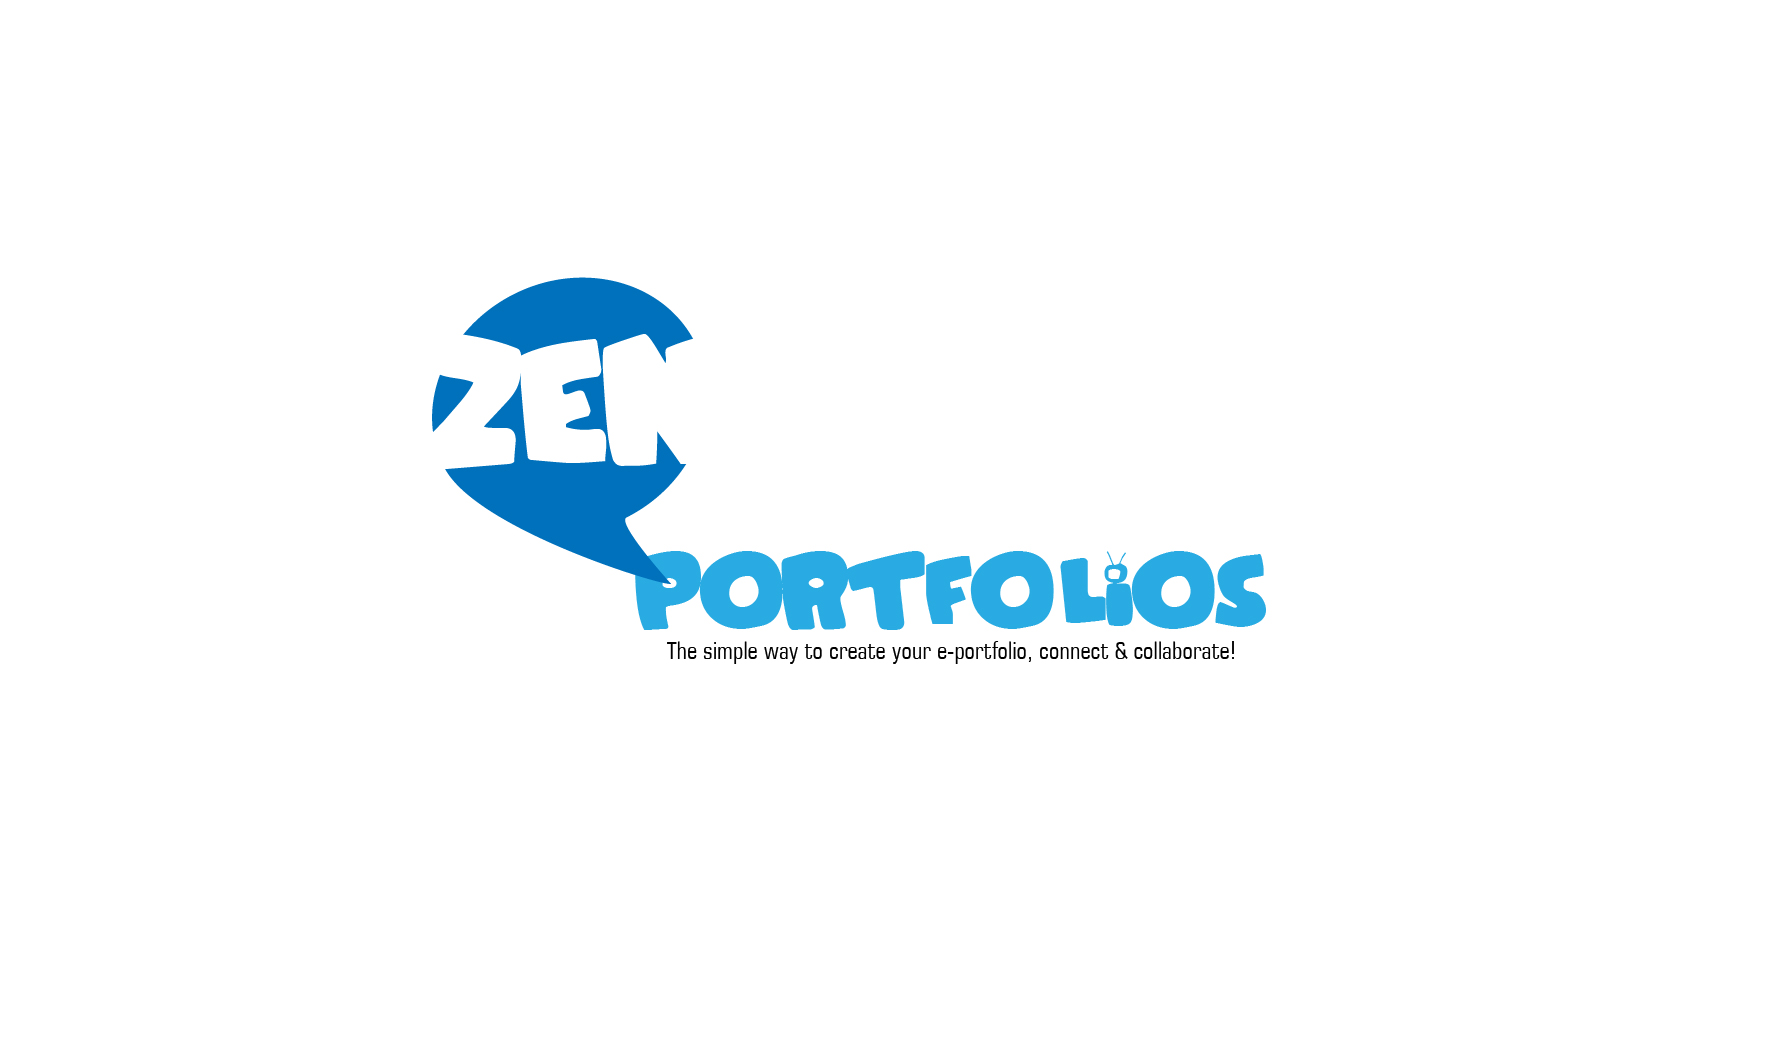 Logo Design by 3draw - Entry No. 13 in the Logo Design Contest New Logo Design for ZEN Portfolios.